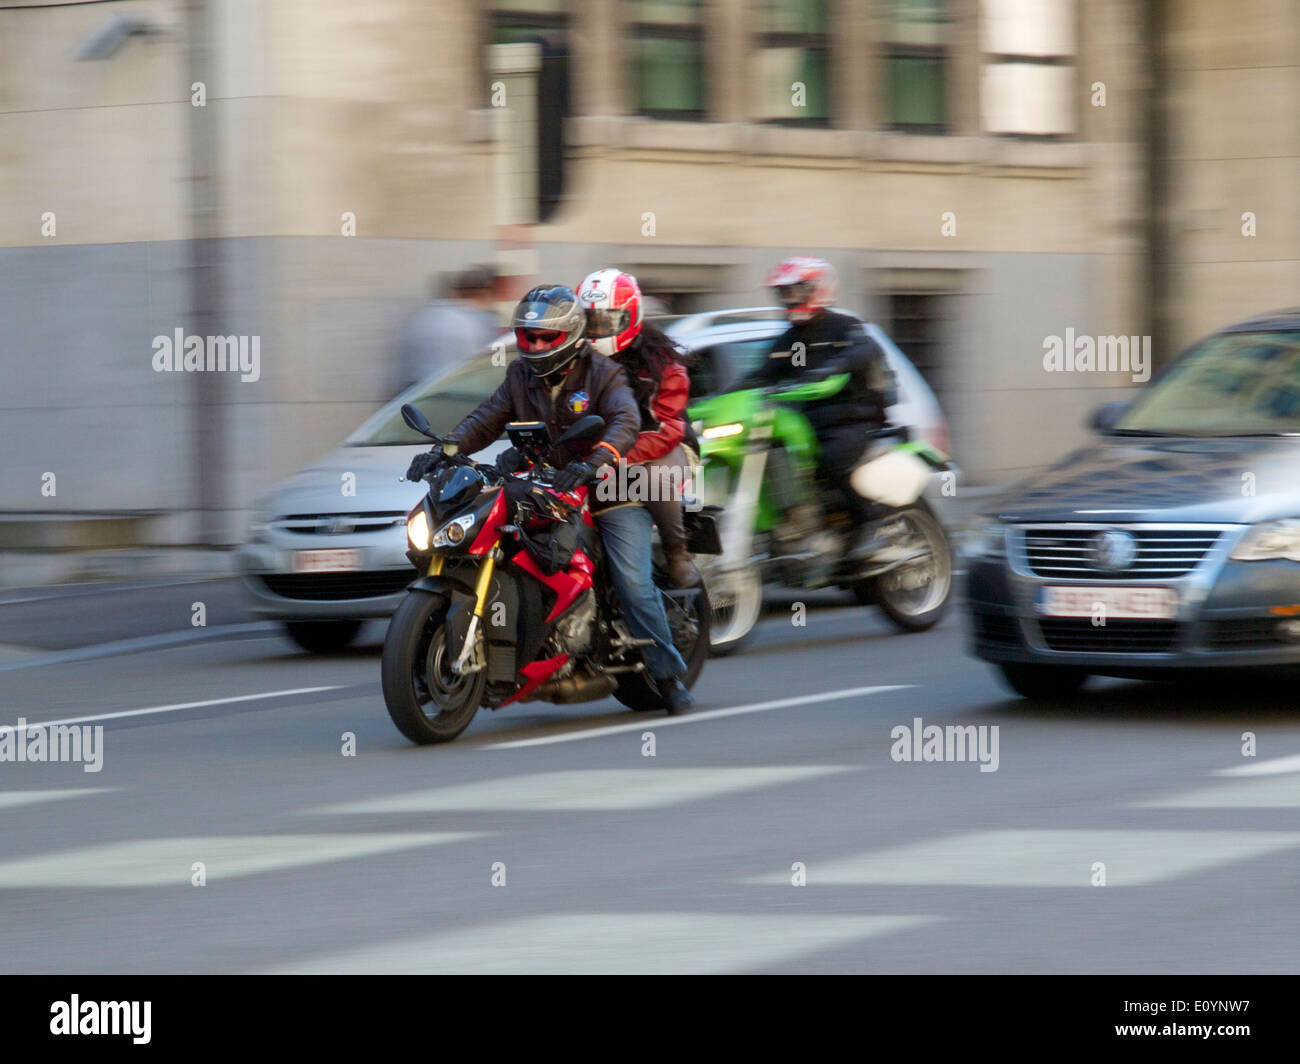 Commuting by motorcycle on the wetstraat in Brussels, Belgium, one of the most congested cities in Europe - Stock Image